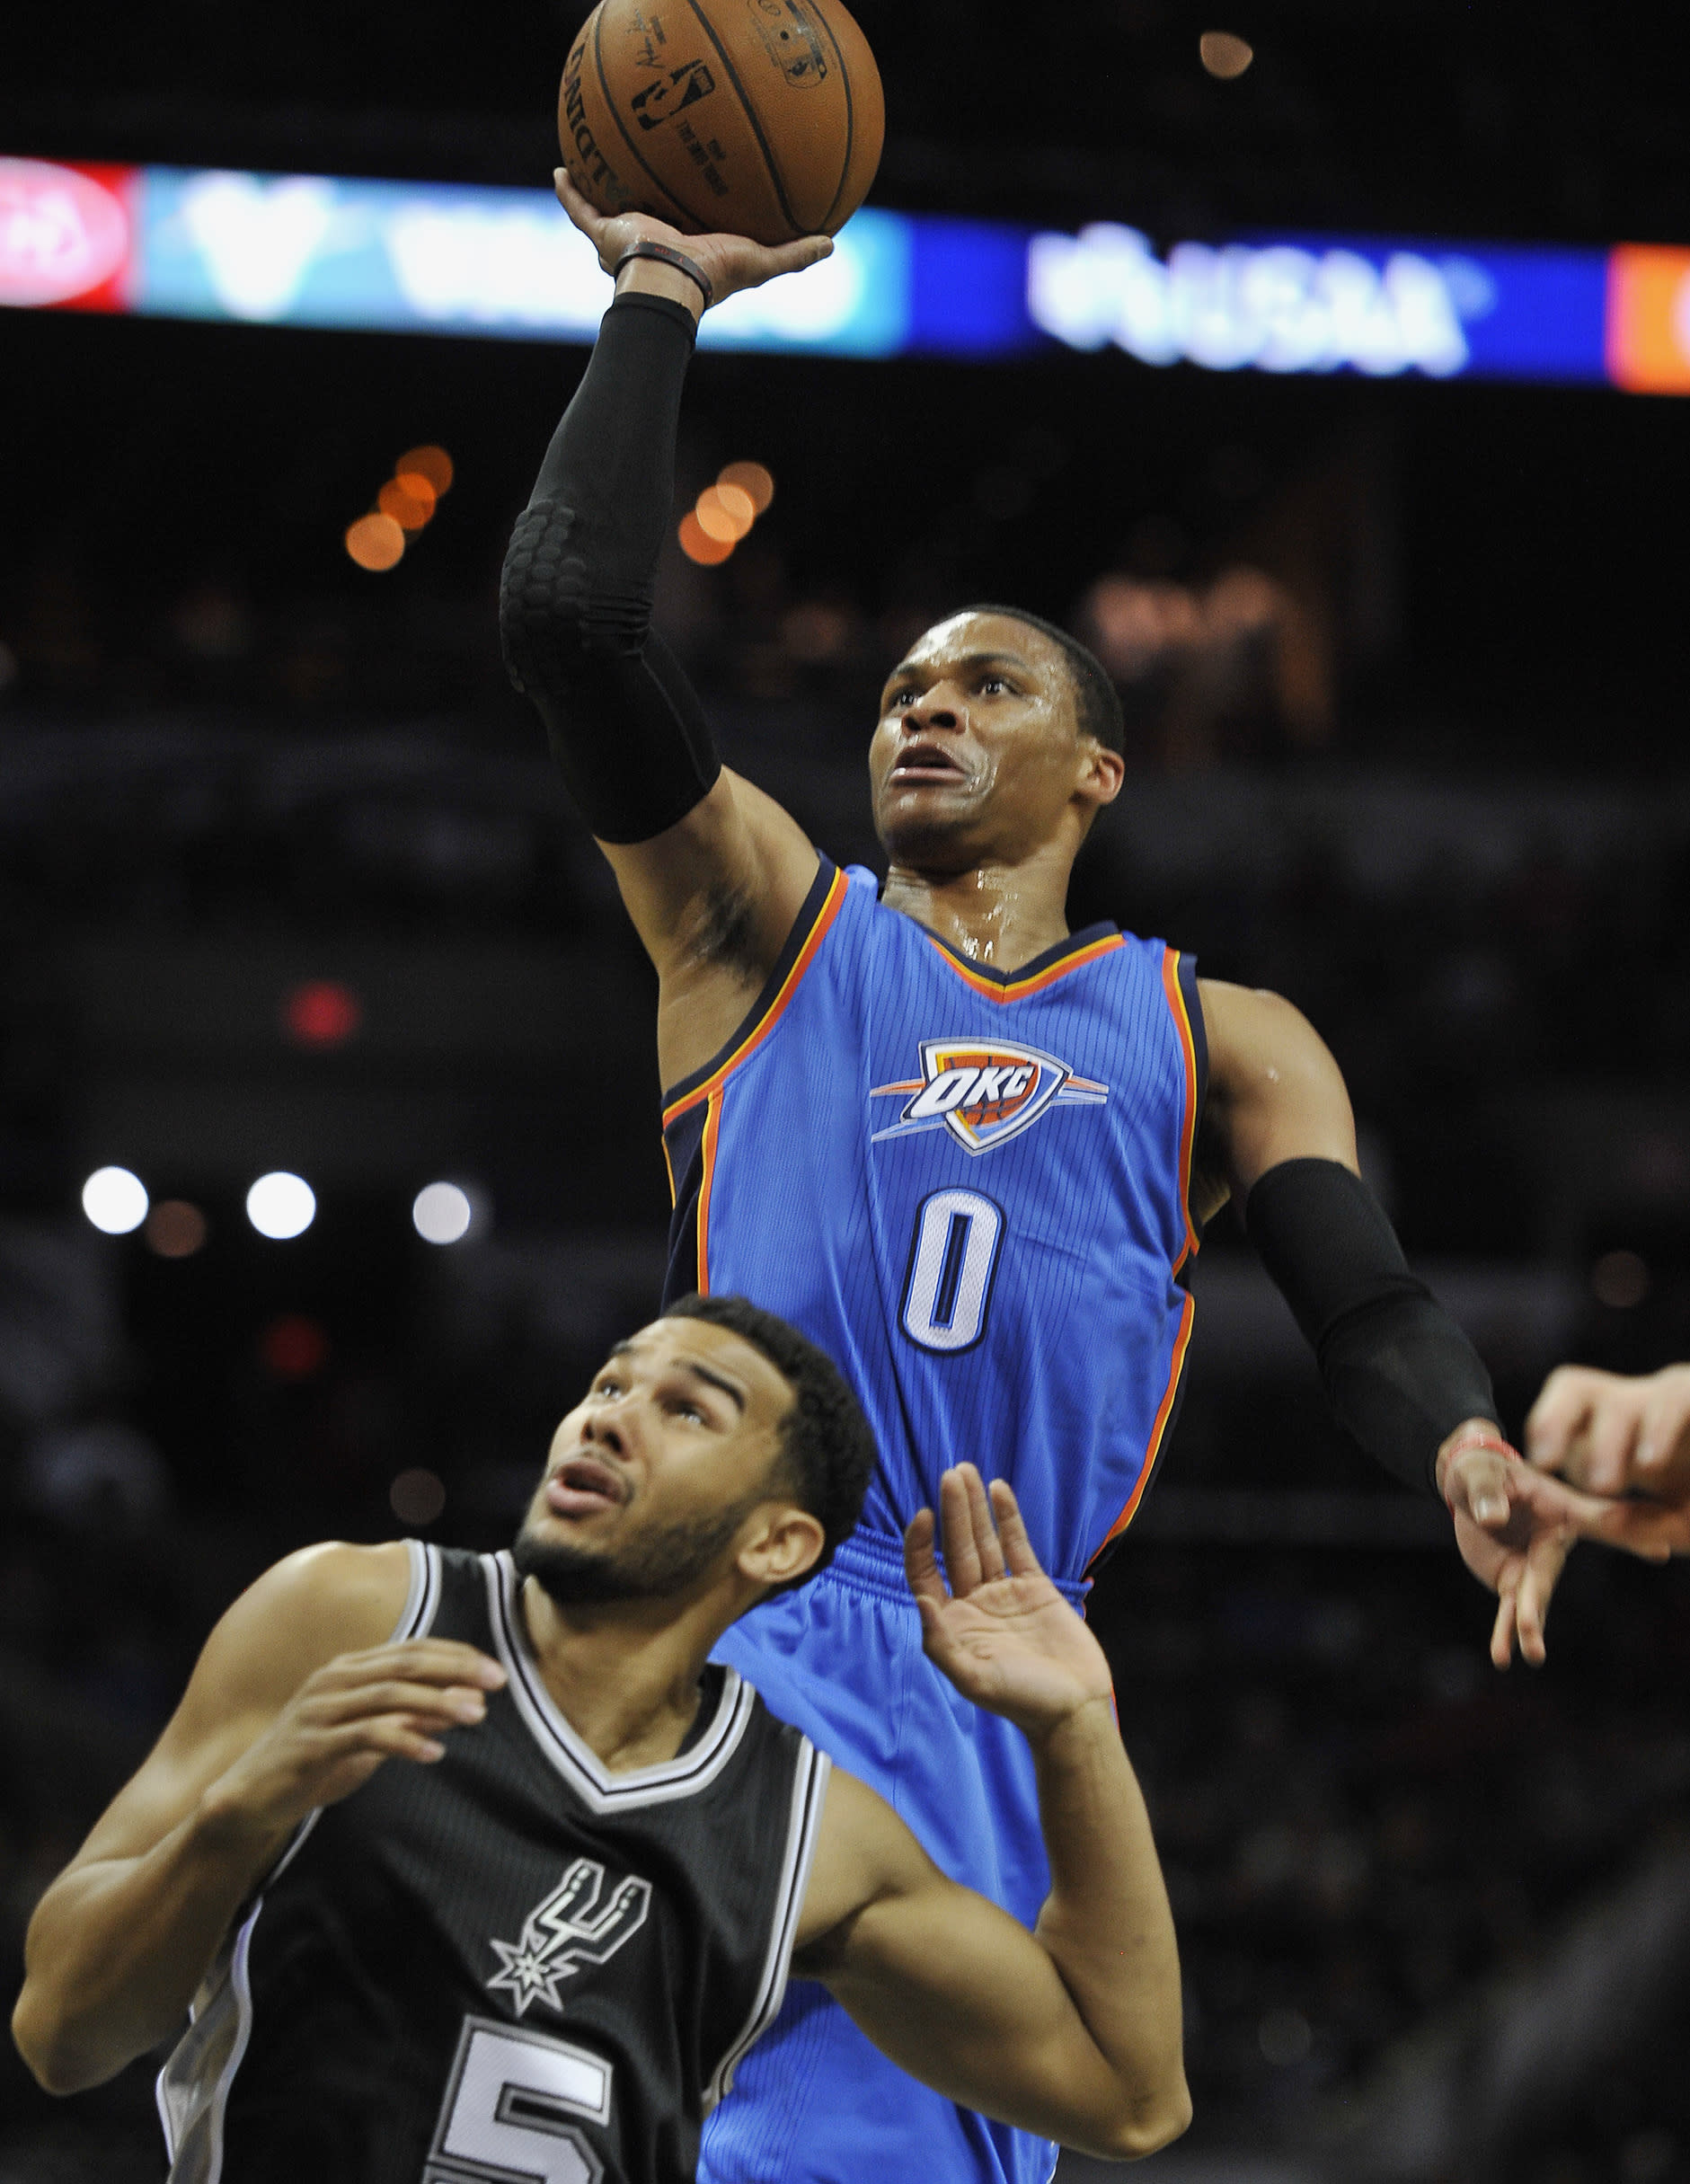 Westbrook scores 34, lifts Thunder over Spurs